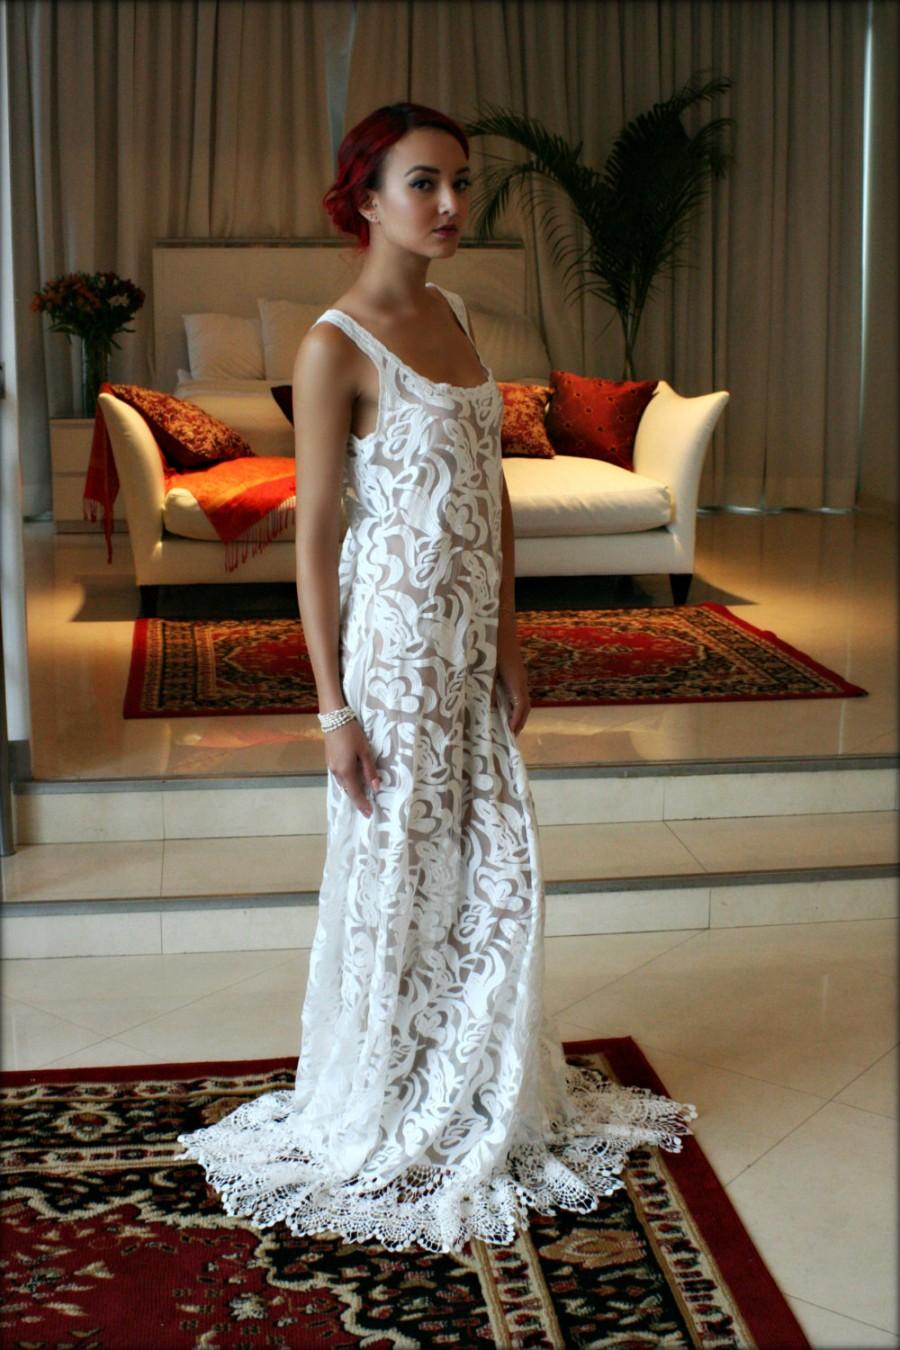 Mariage - Bridal Nightgown Embroidered Lace Callie Off White Wedding Lingerie Venise Lace Bridal Sleepwear Wedding Nightgown Art Deco Honeymoon